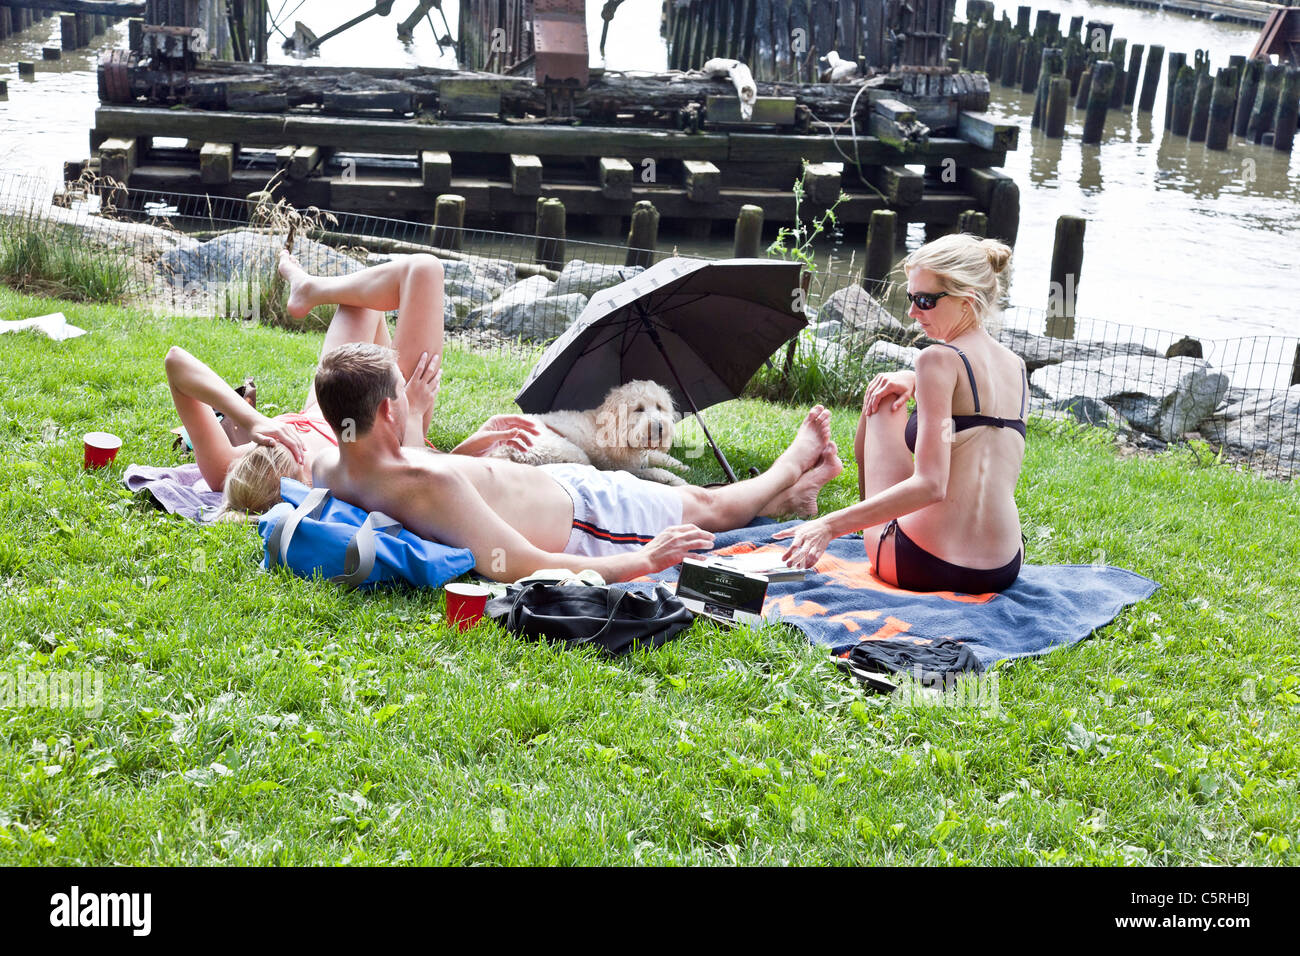 two shapely young women fluffy dog & male companion sunning on grass next to Hudson river & charred timbers - Stock Image